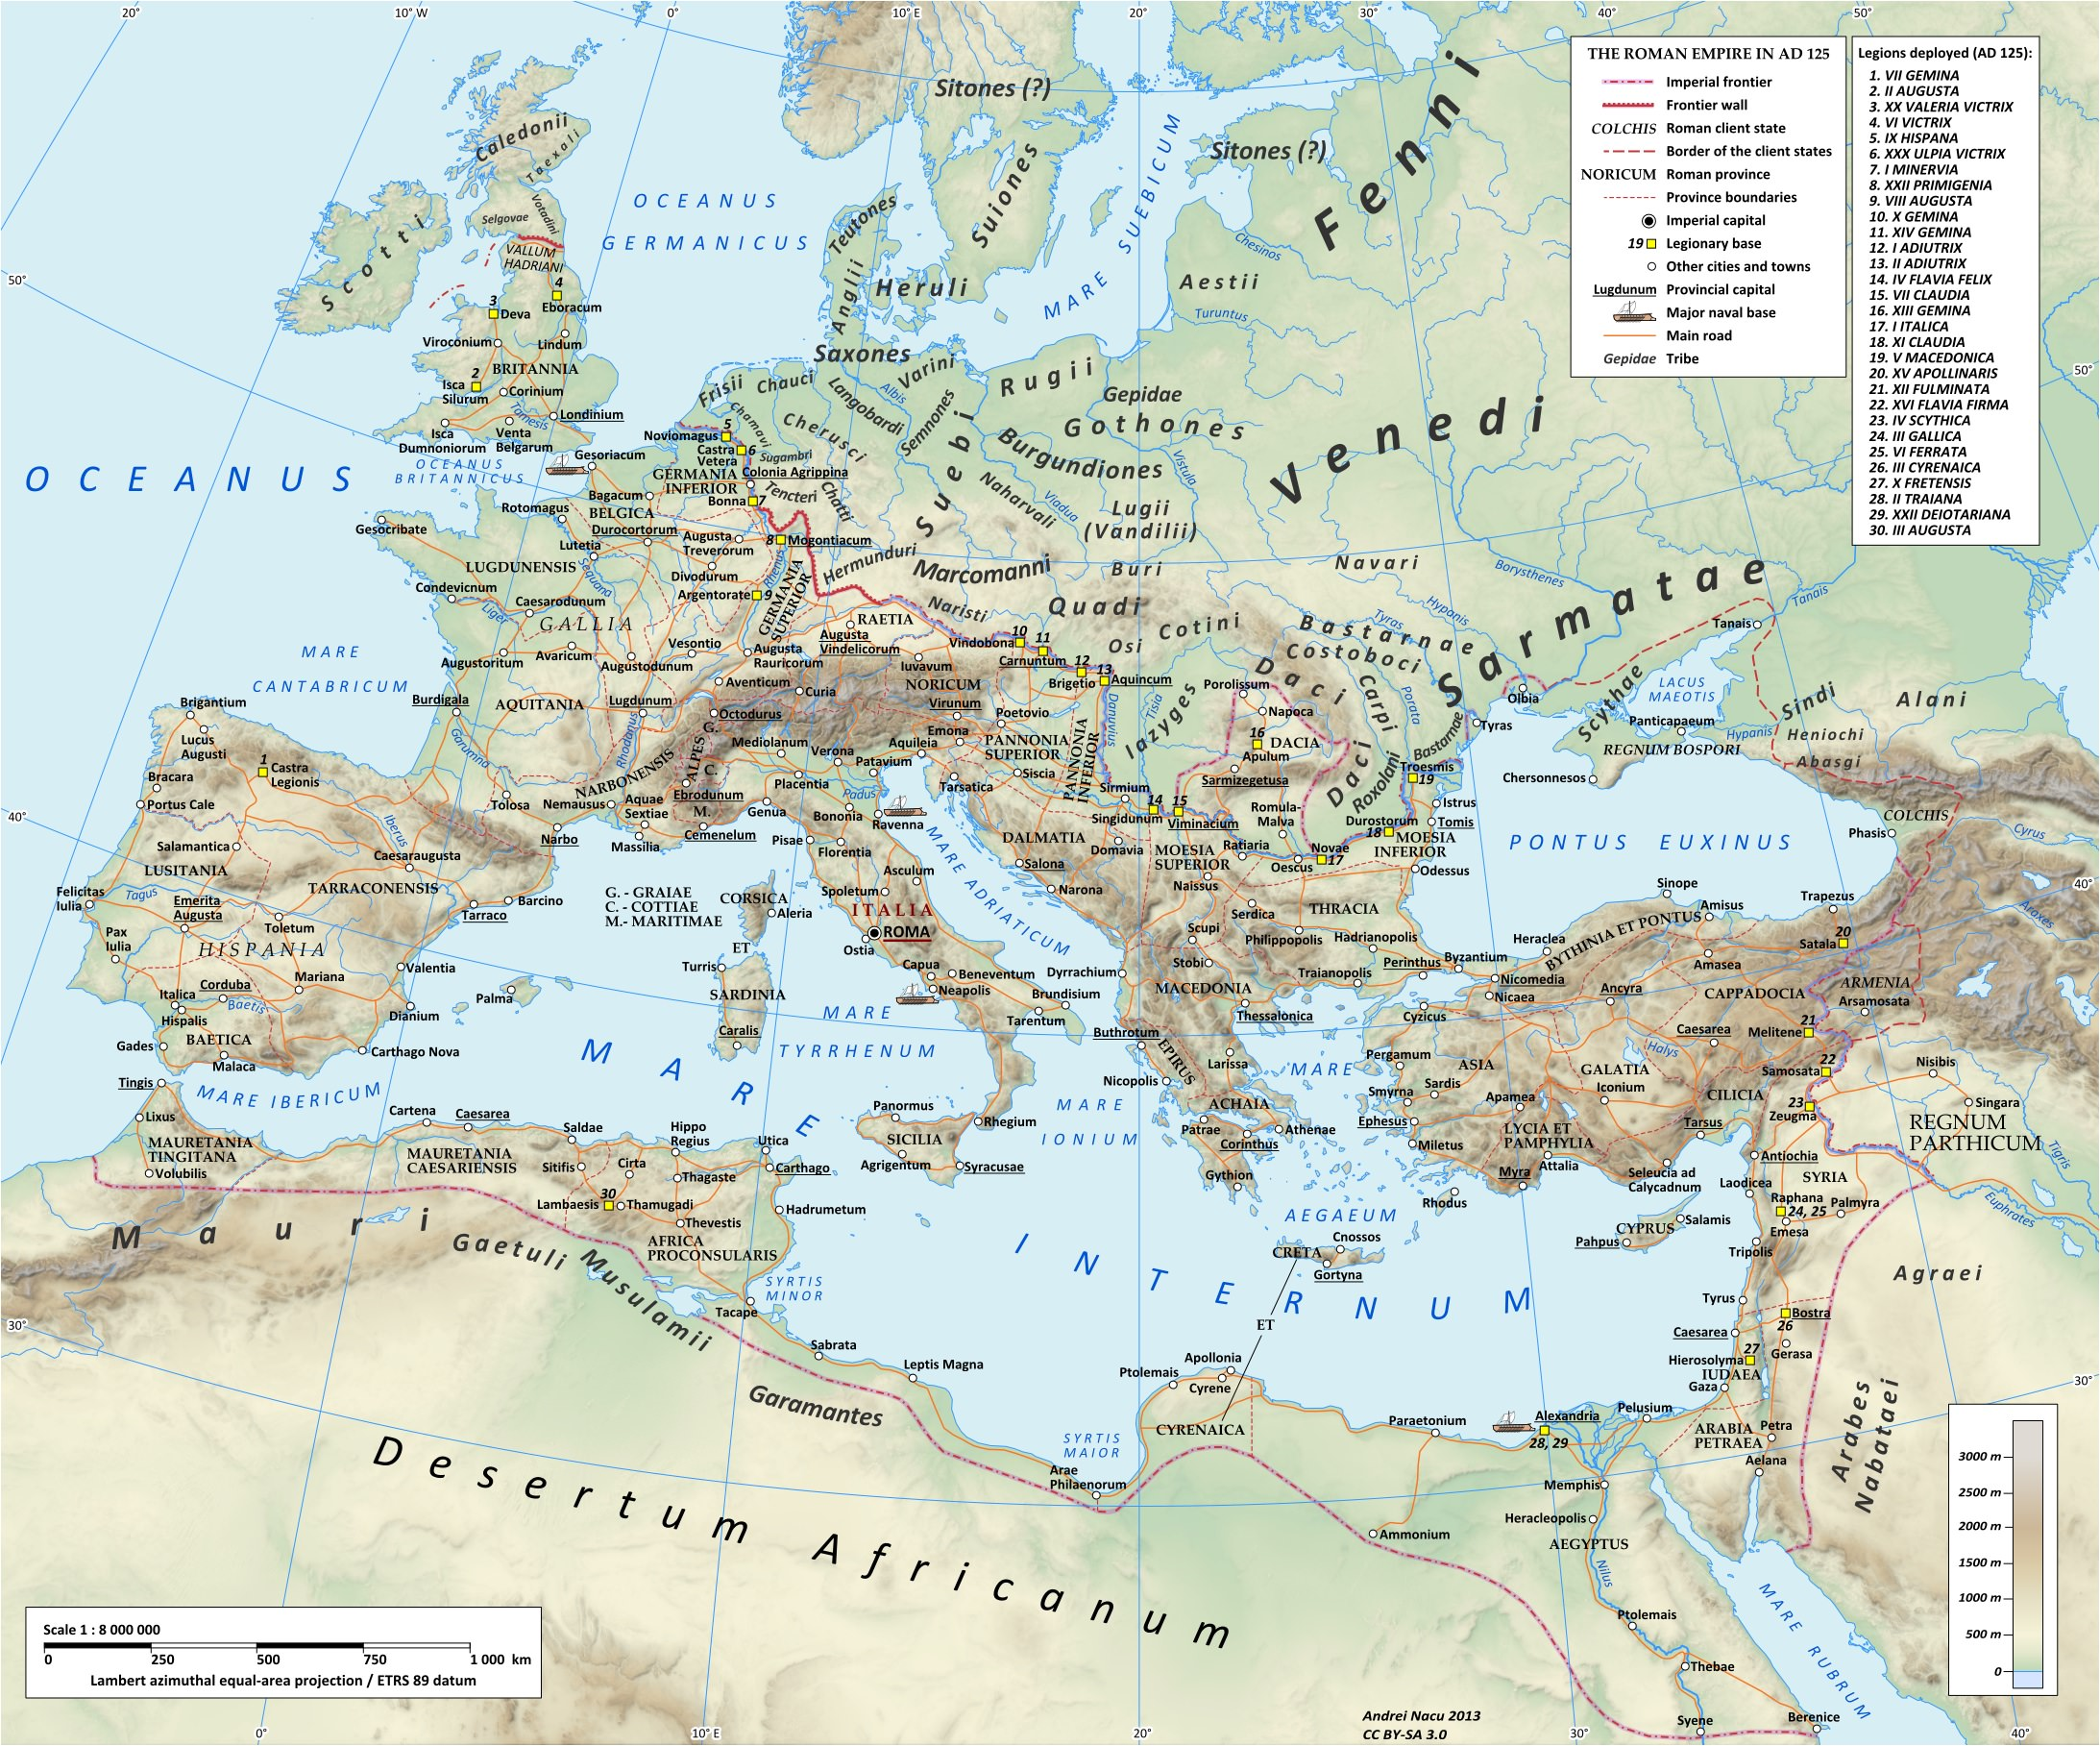 map of europe in 125 ce illustration ancient history encyclopedia